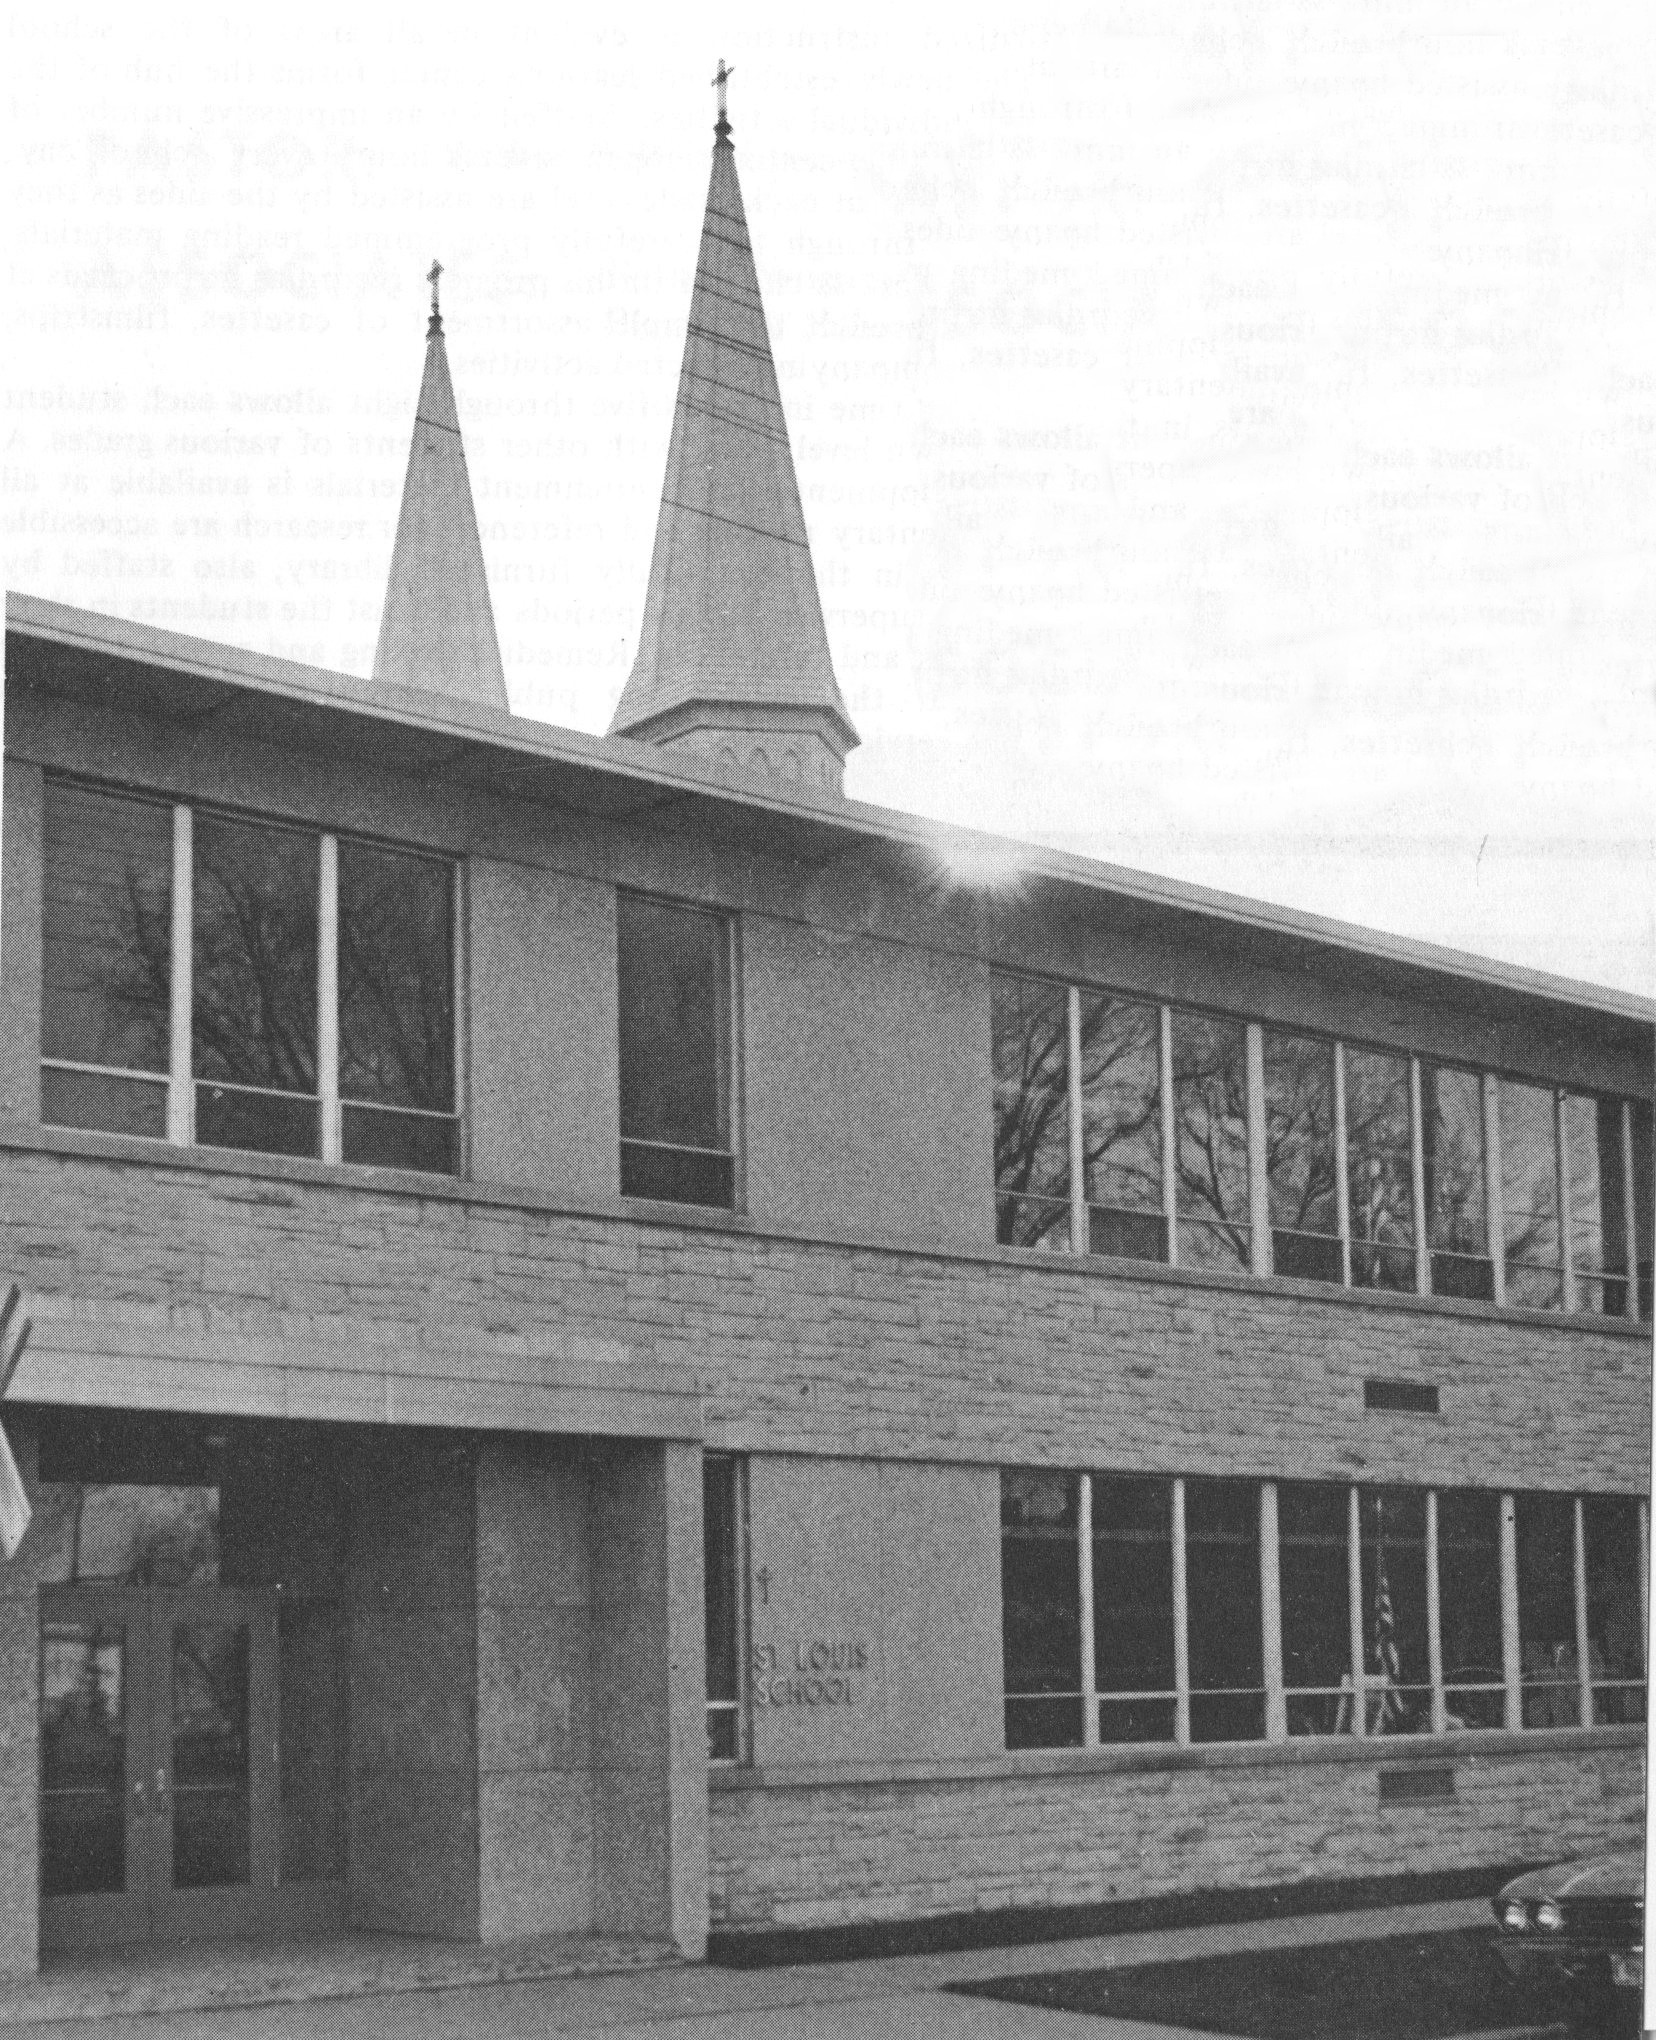 St. Louis School with the twin spires of the church in the background, c. 1970.